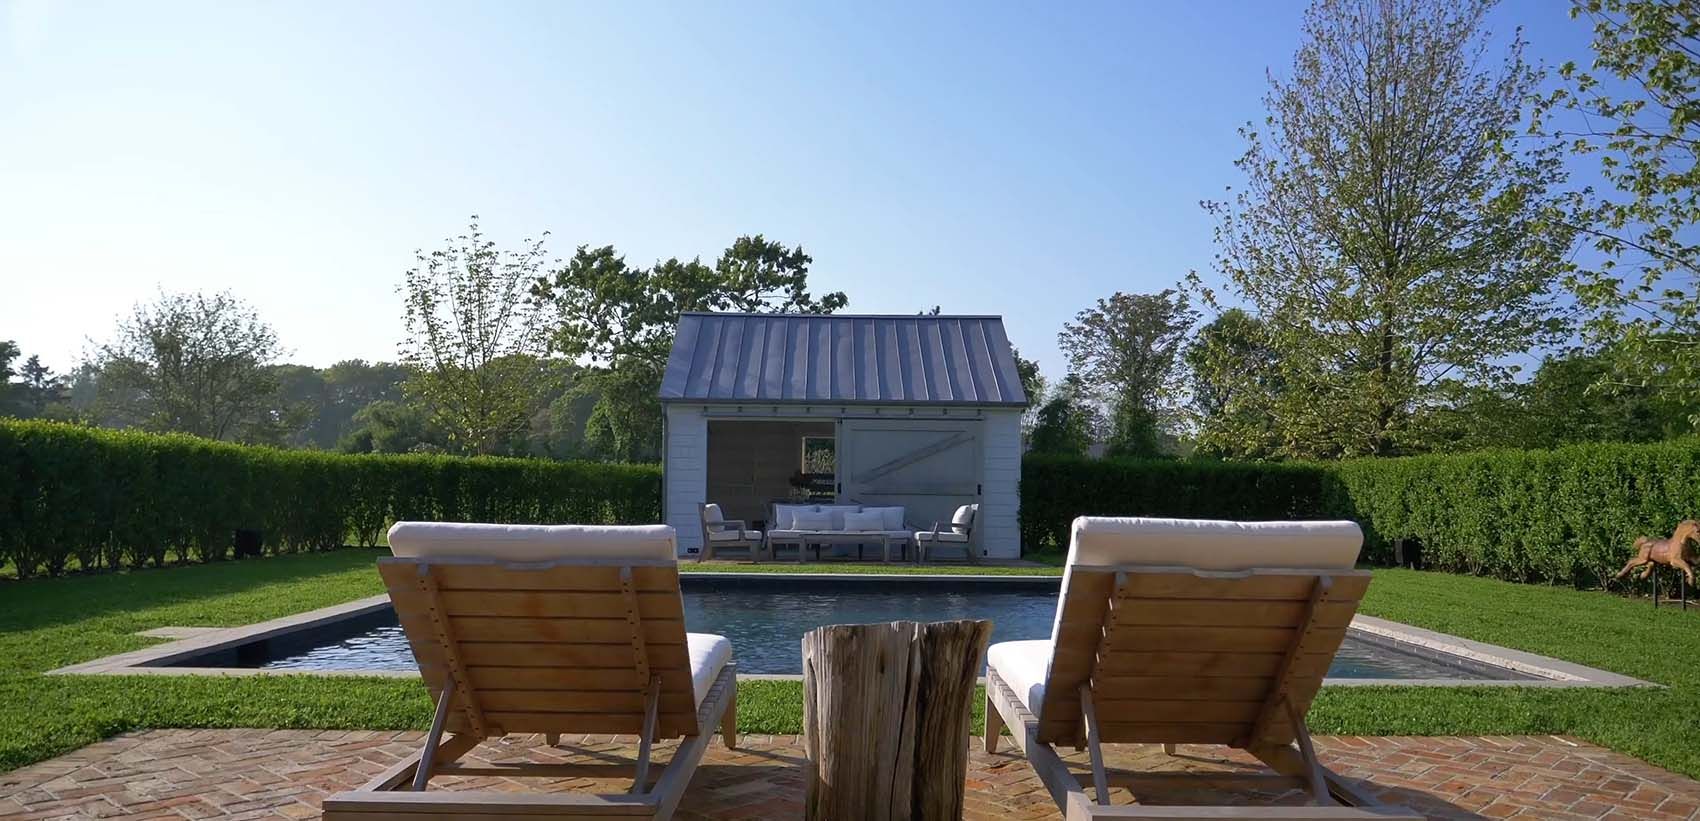 Tiny pool house design with shed doors white siding and metal roof